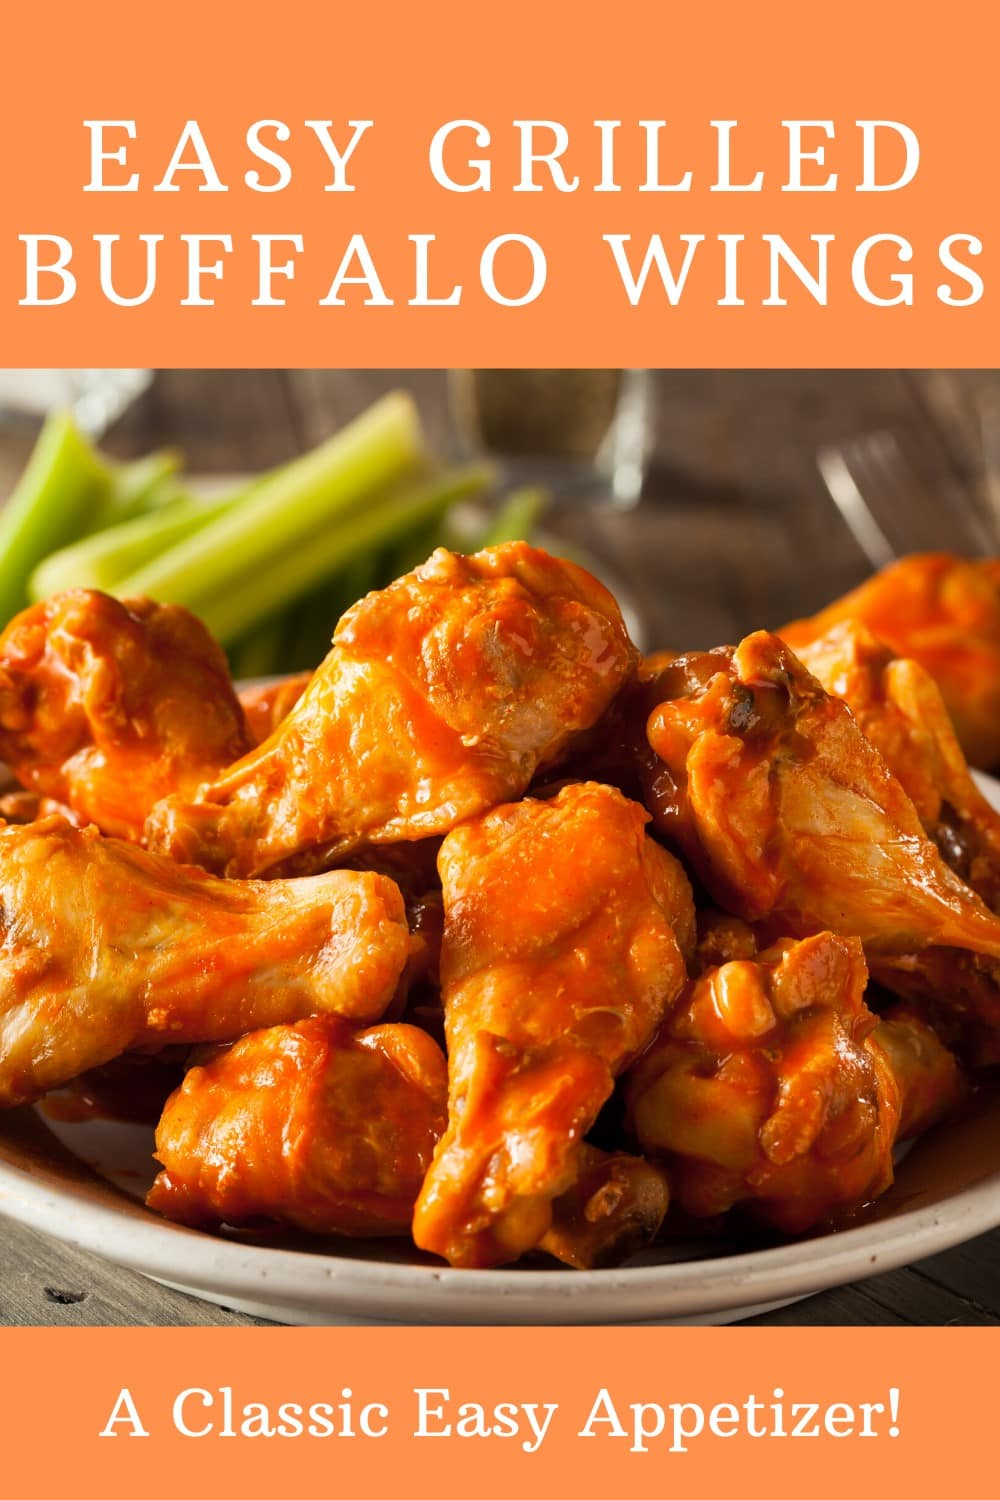 easy outdoor grilled recipes - buffalo wings